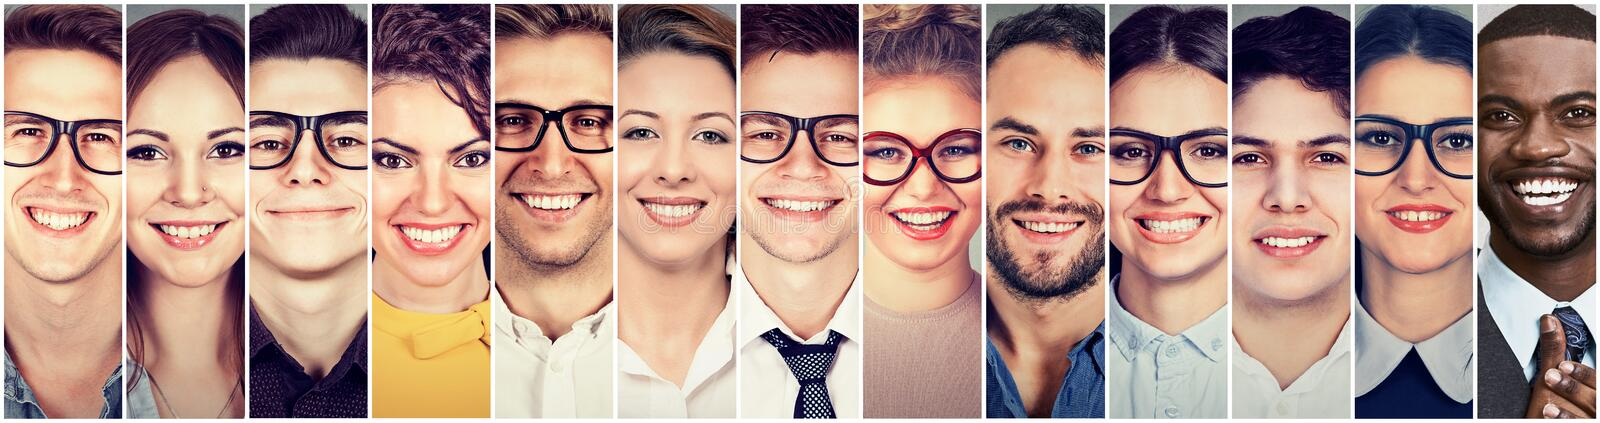 Smiling faces. Happy group of multiethnic young people men and women royalty free stock photos